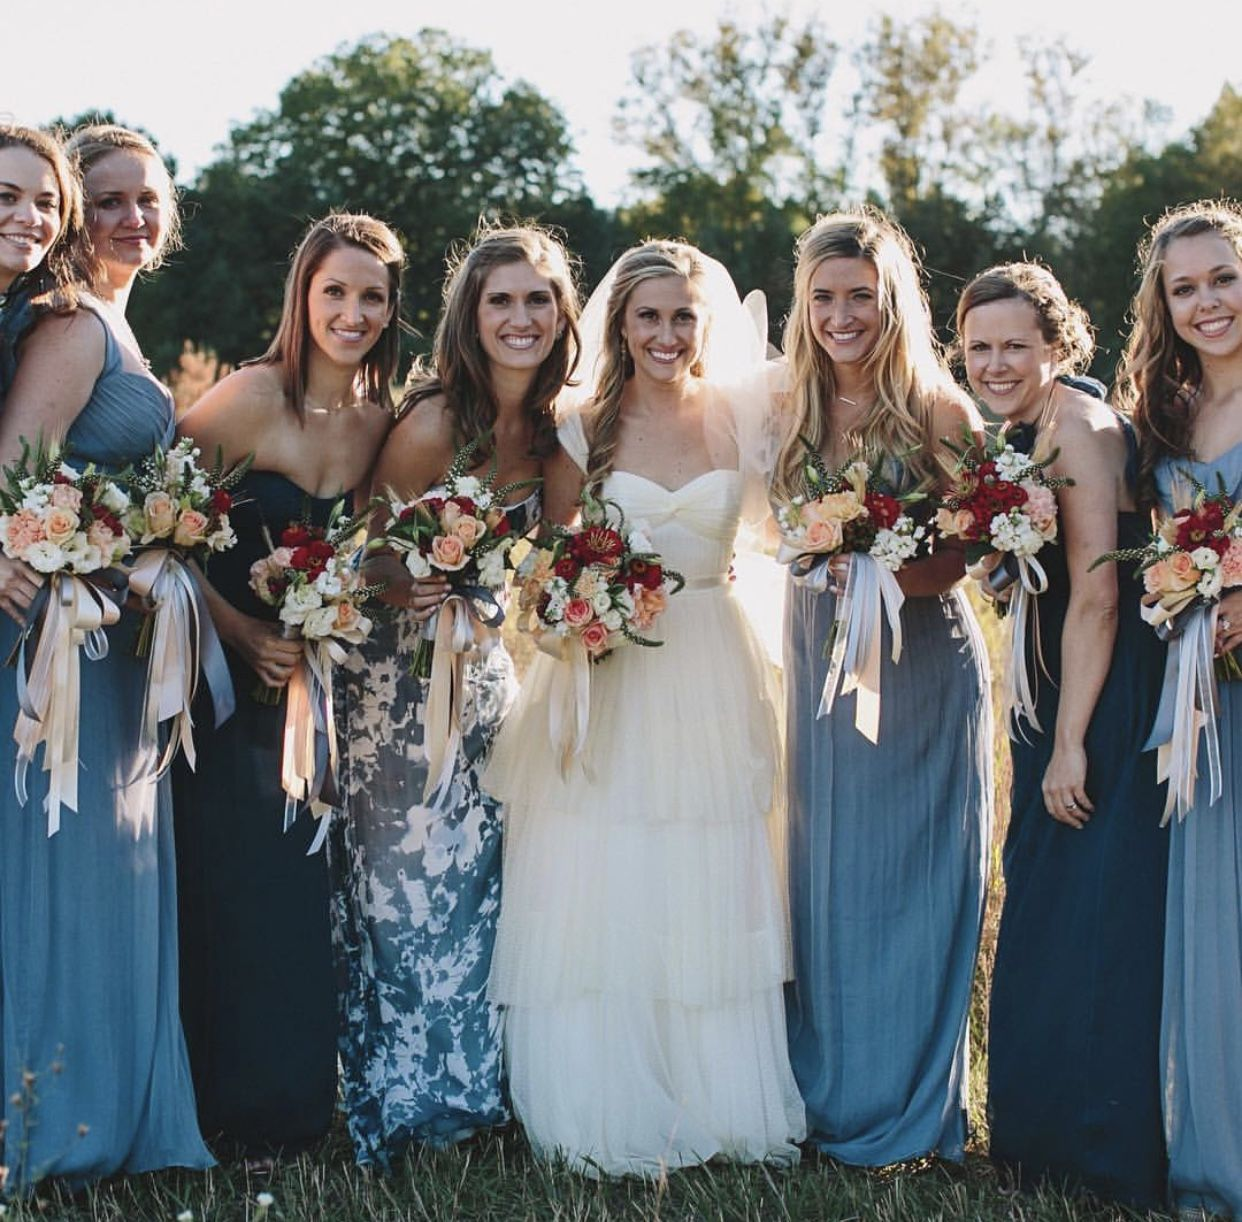 Bridesmaid dresses different colors and pattern for moh i do shades of blue and coordinating floral print mismatched bridesmaid dressesybe cute idea ombrellifo Gallery